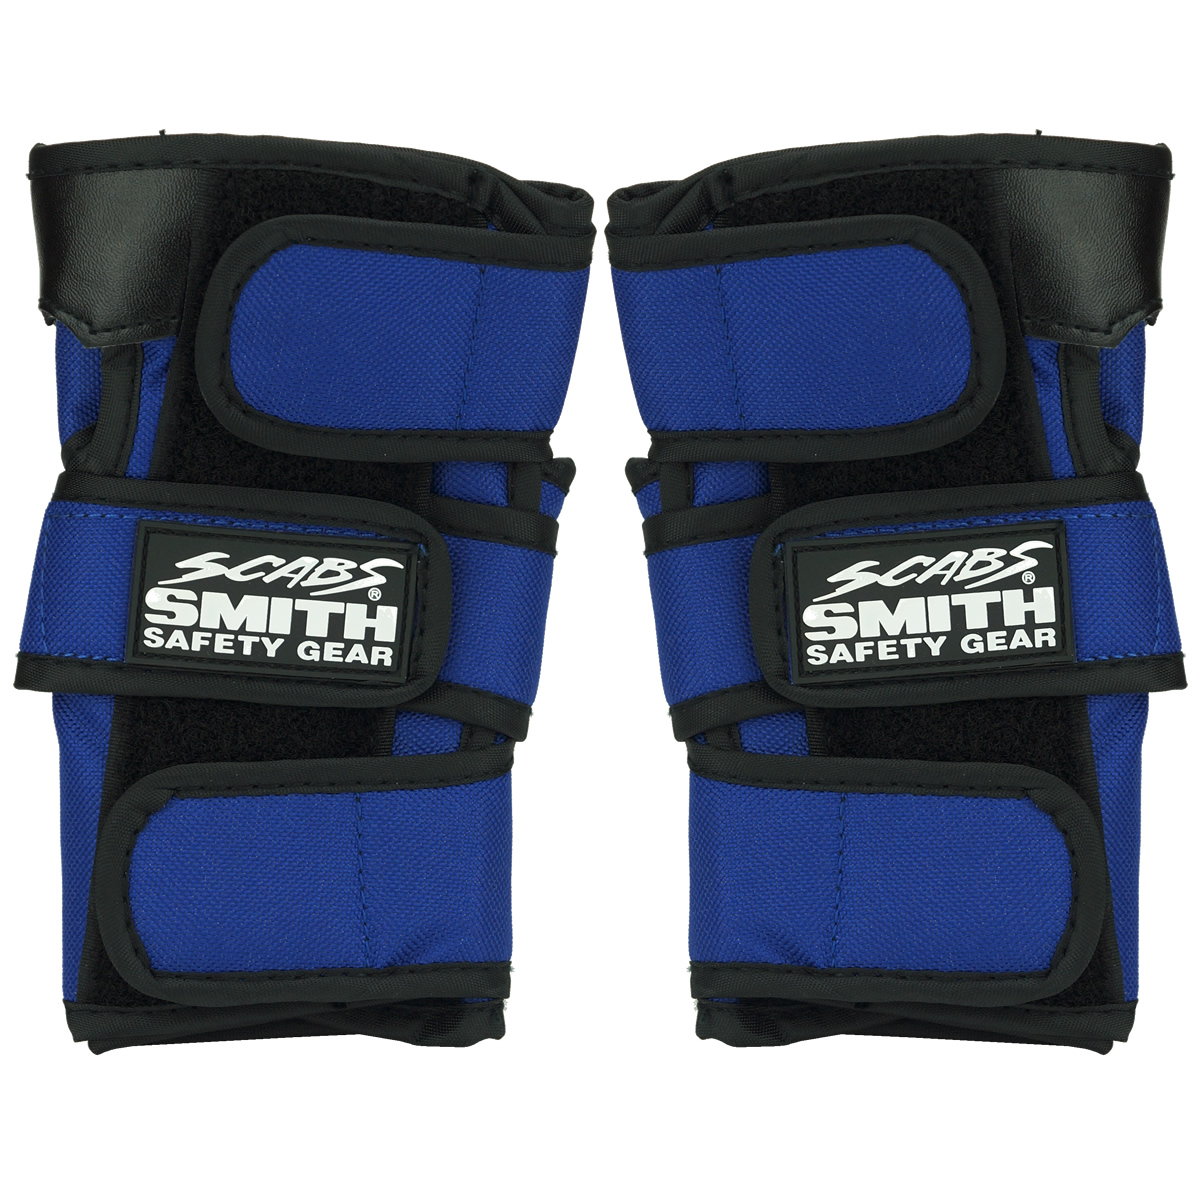 Smith-Scabs-Wrist-Guard-Blue.jpg